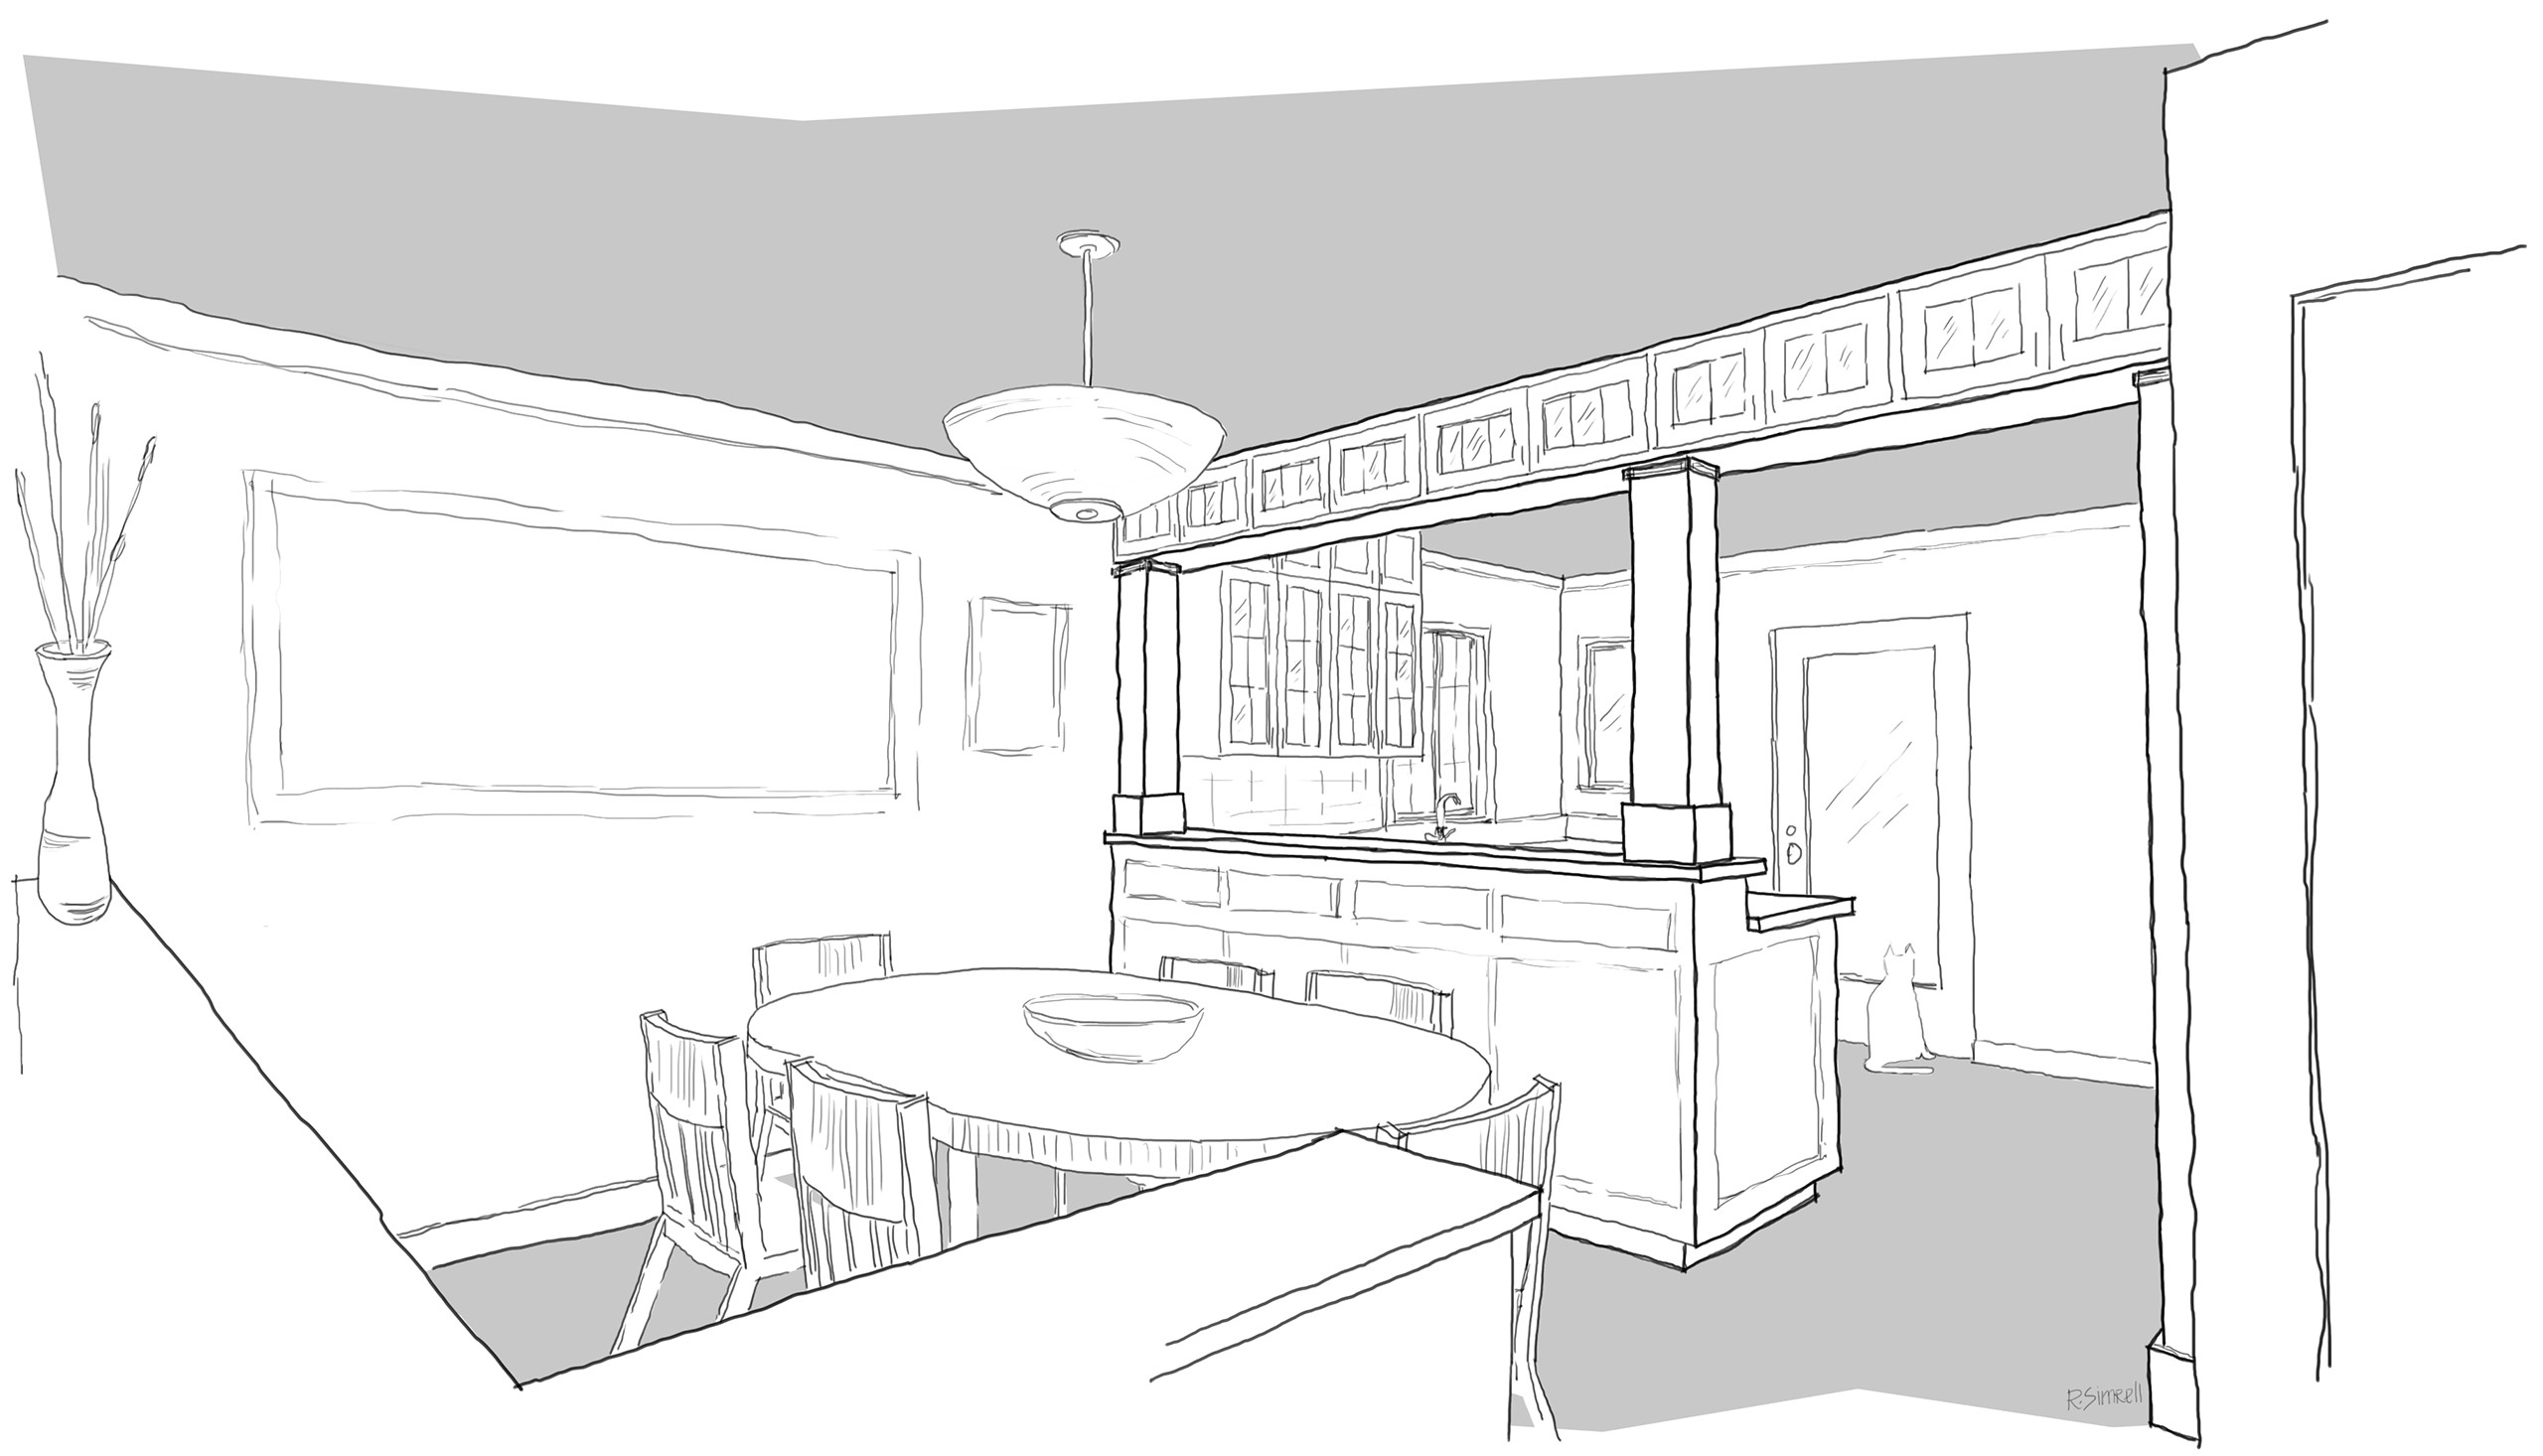 92nd Street Remodel U0026 Addition: Early Design Sketches   Shaping Space With  Casework